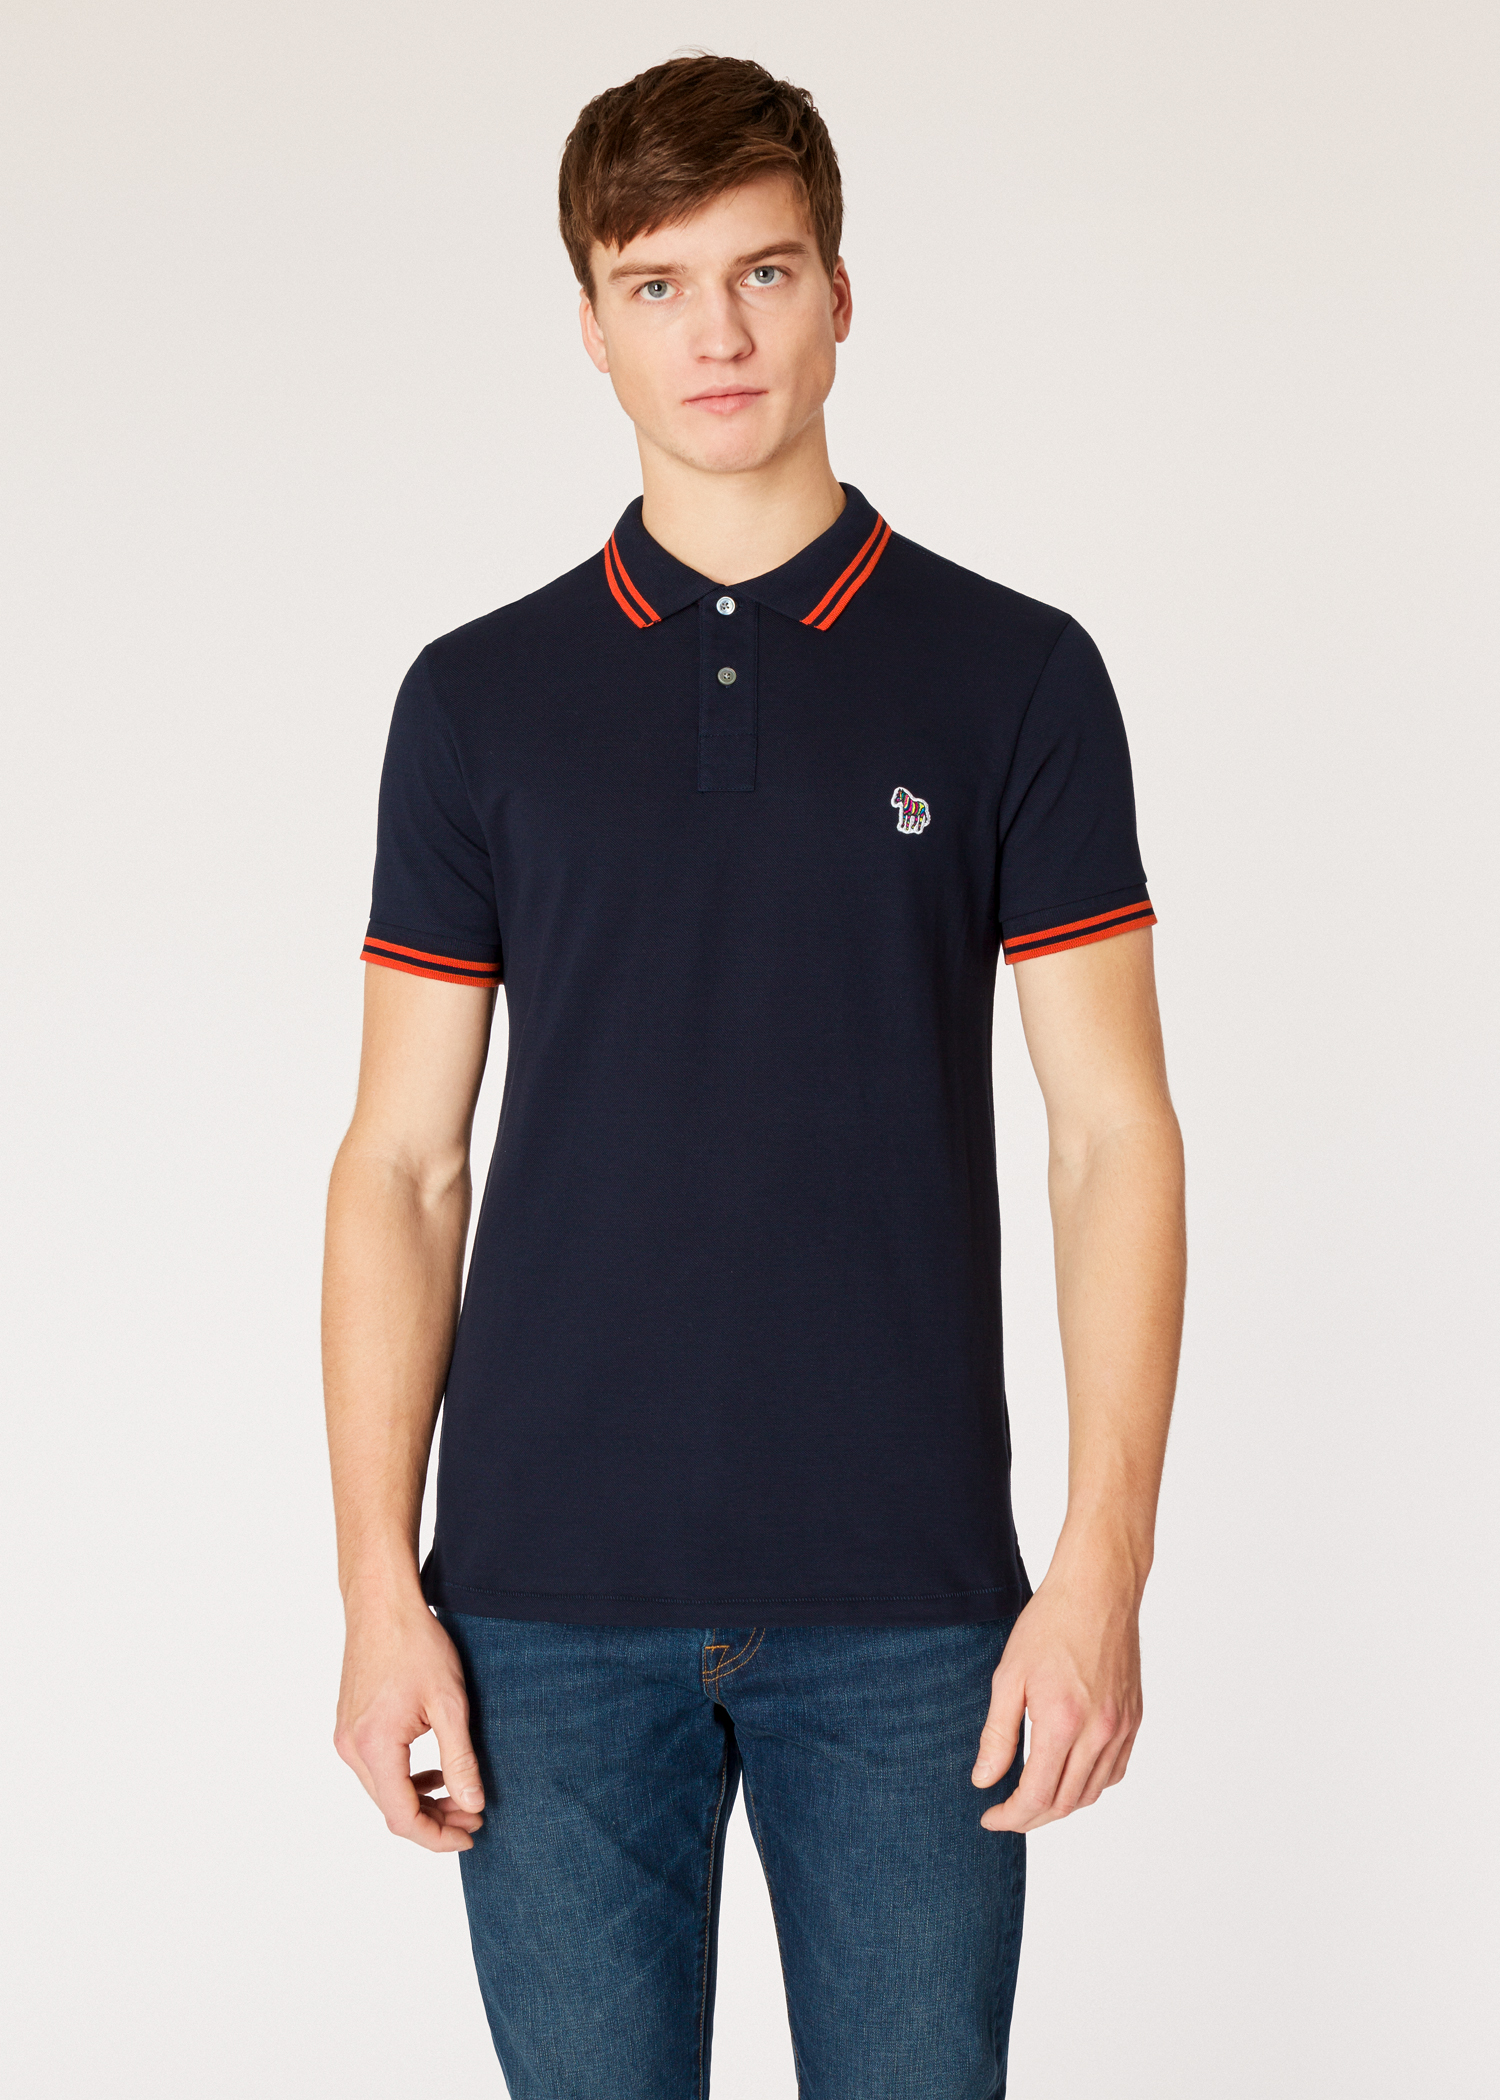 c3a85edac Model close up - Men s Slim-Fit Dark Navy Zebra Polo Shirt With Orange  Tipping